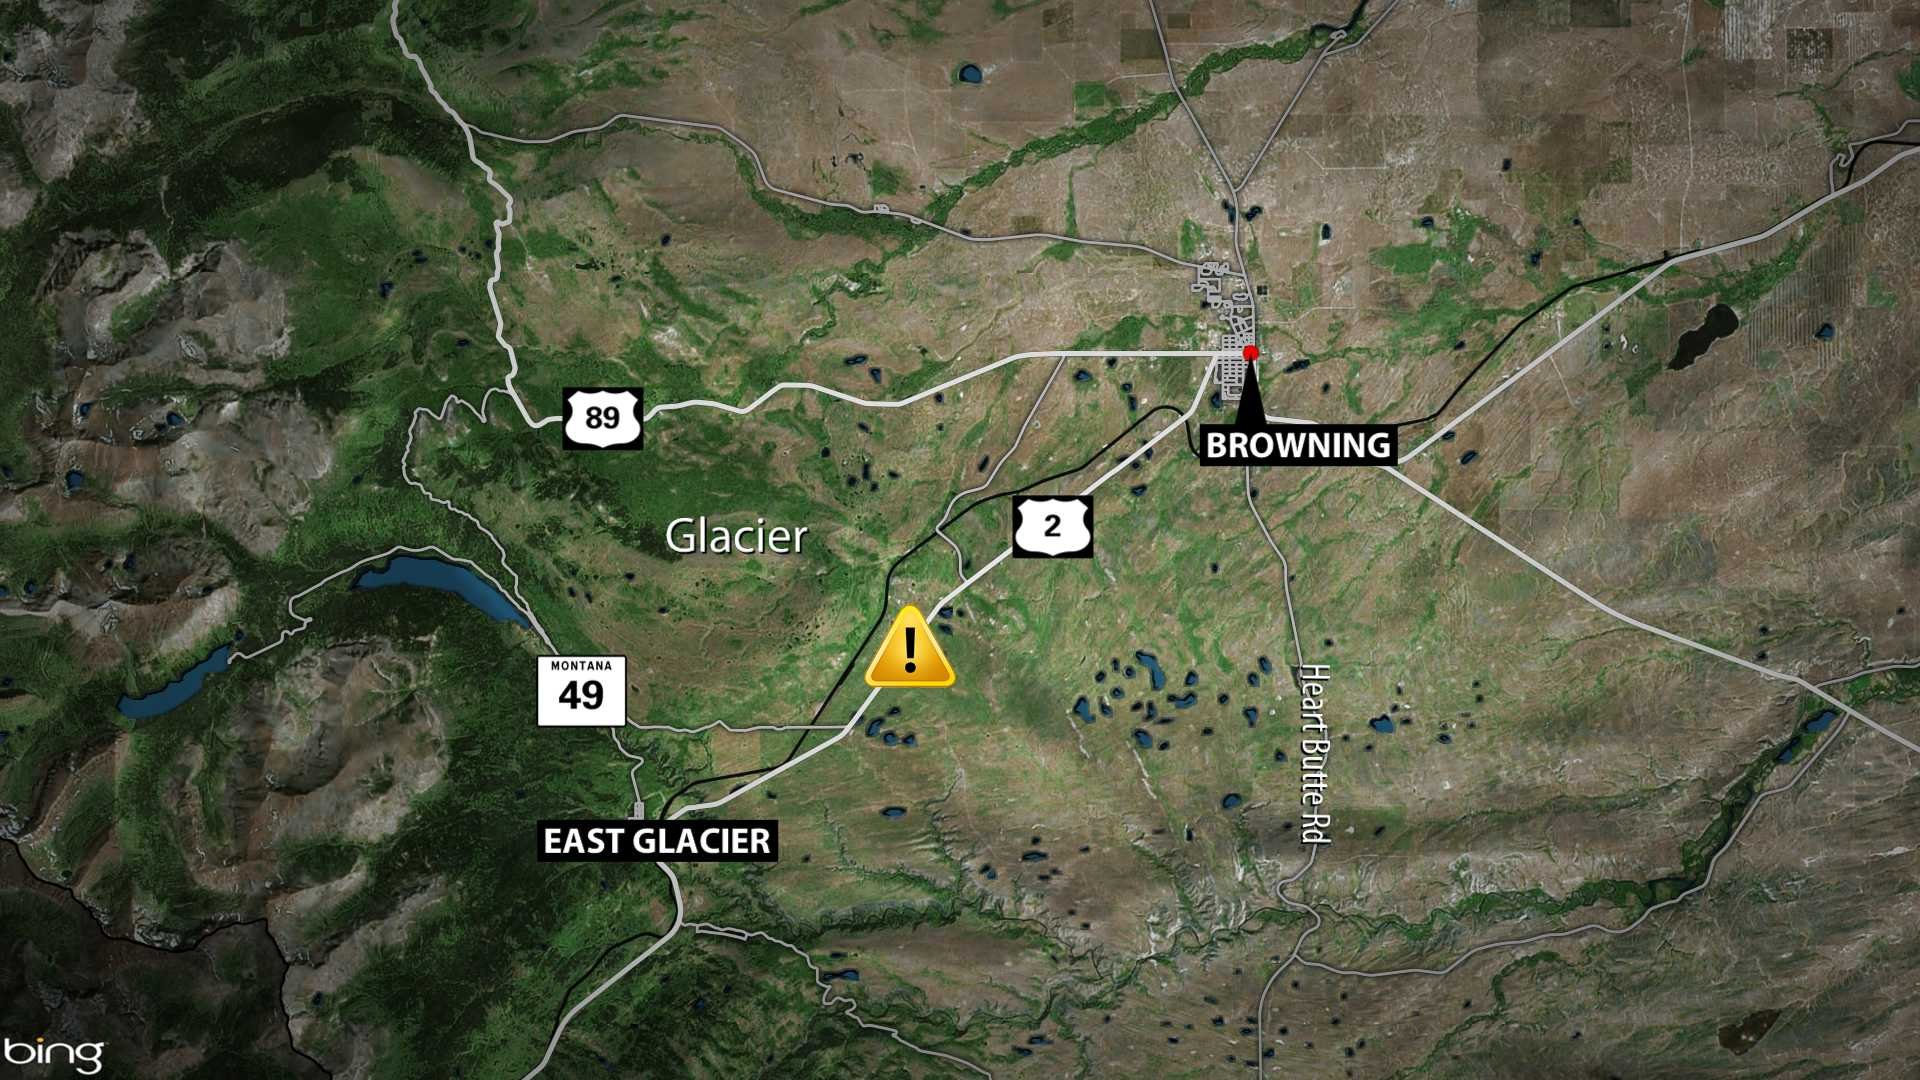 Fatal crash reported overnight in Glacier County - KBZK com